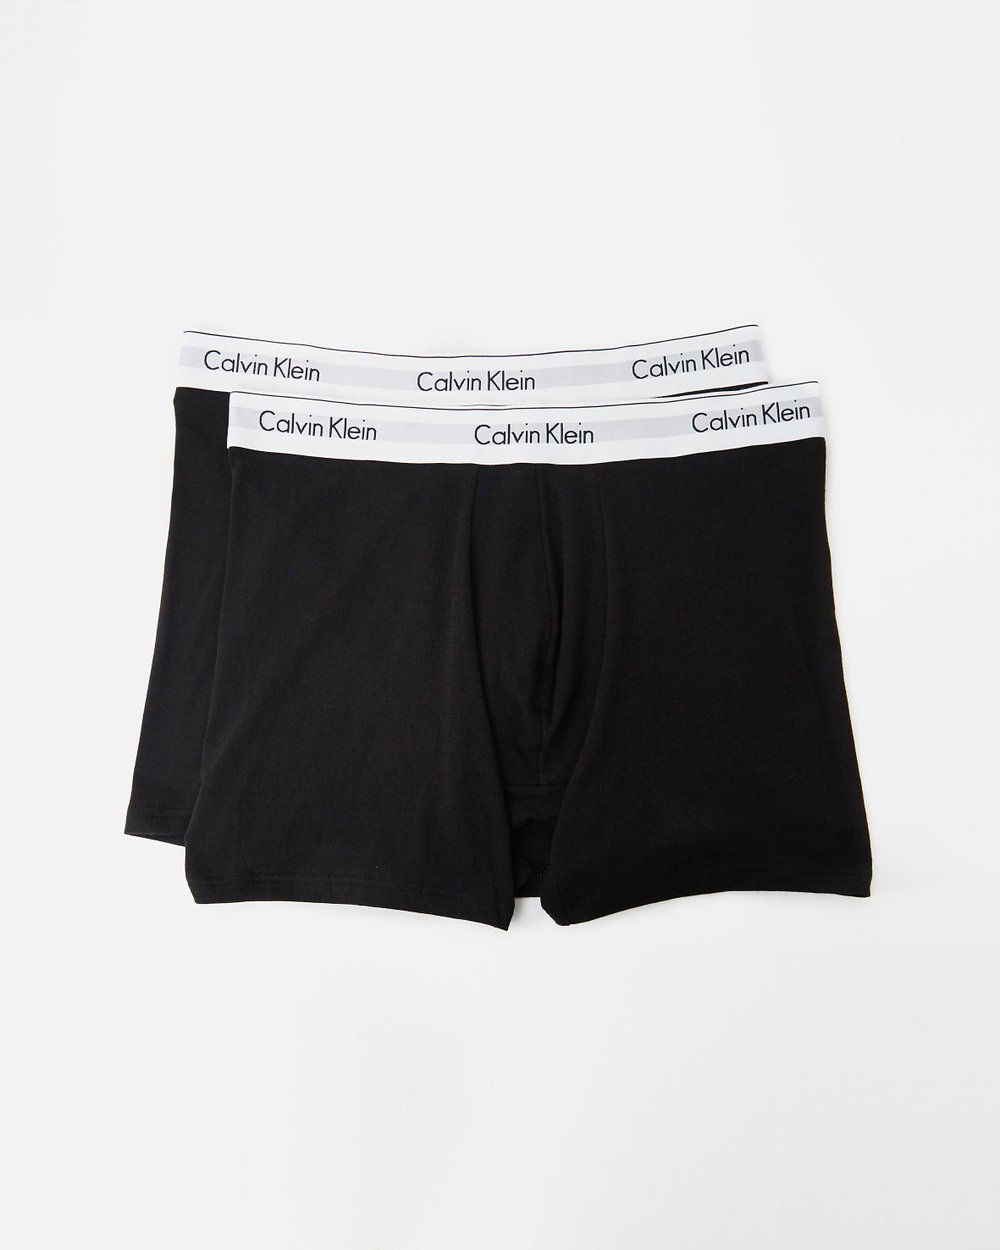 Modern Cotton Stretch Boxer Briefs 2-Pack by Calvin Klein Online ... 0274e7c9b